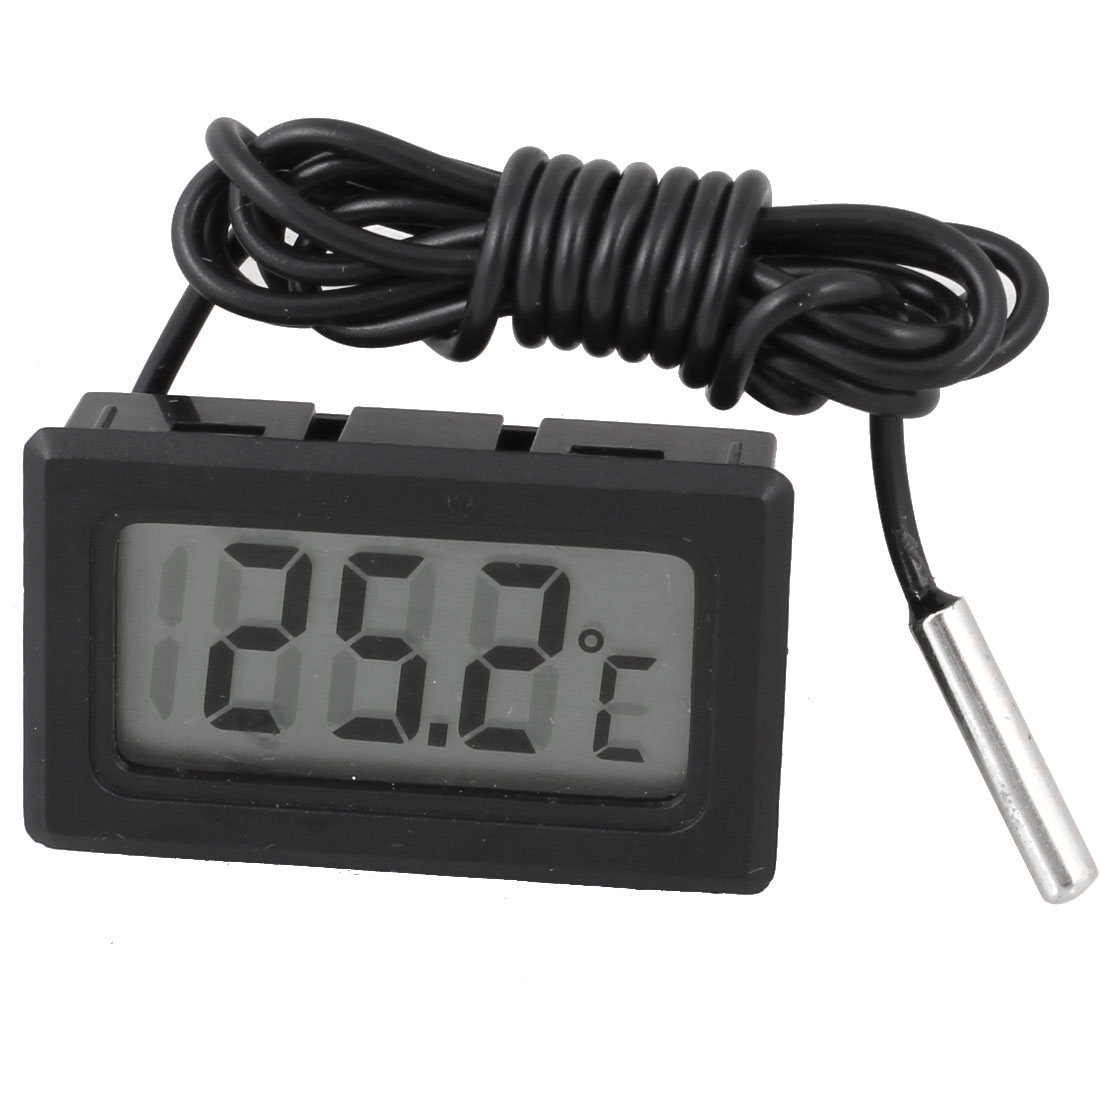 "38.2"" Length Cable LCD Screen Display Digital Thermometer Probe"